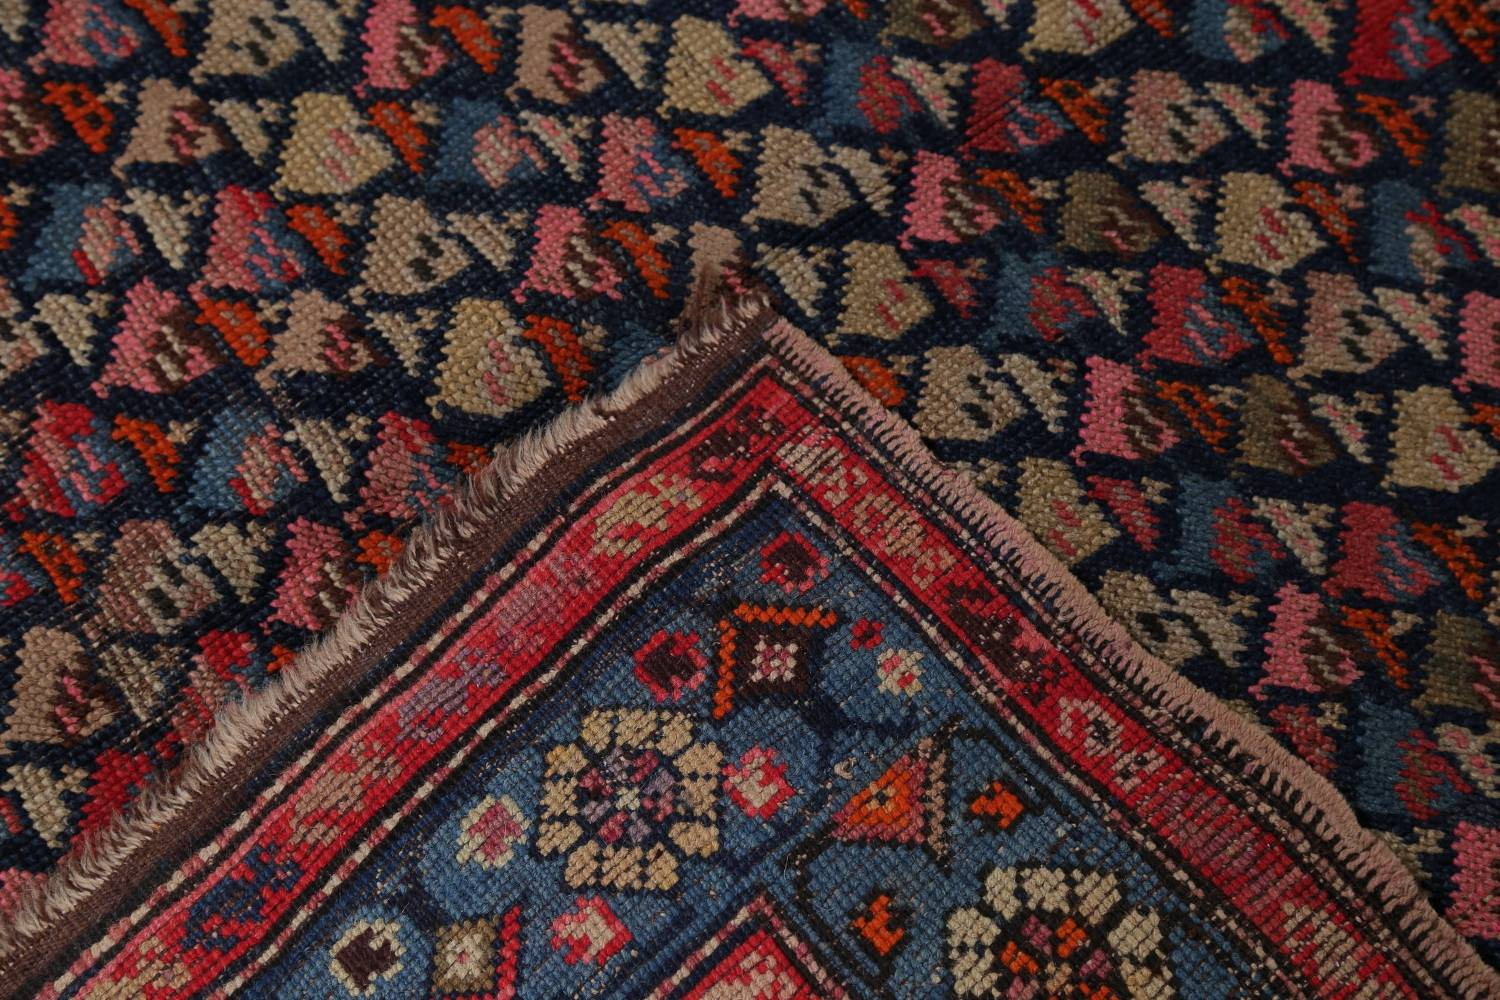 Pre-1900 Karabakh Bote Russian Oriental Hand-Knotted 5x16 Runner Rug image 23